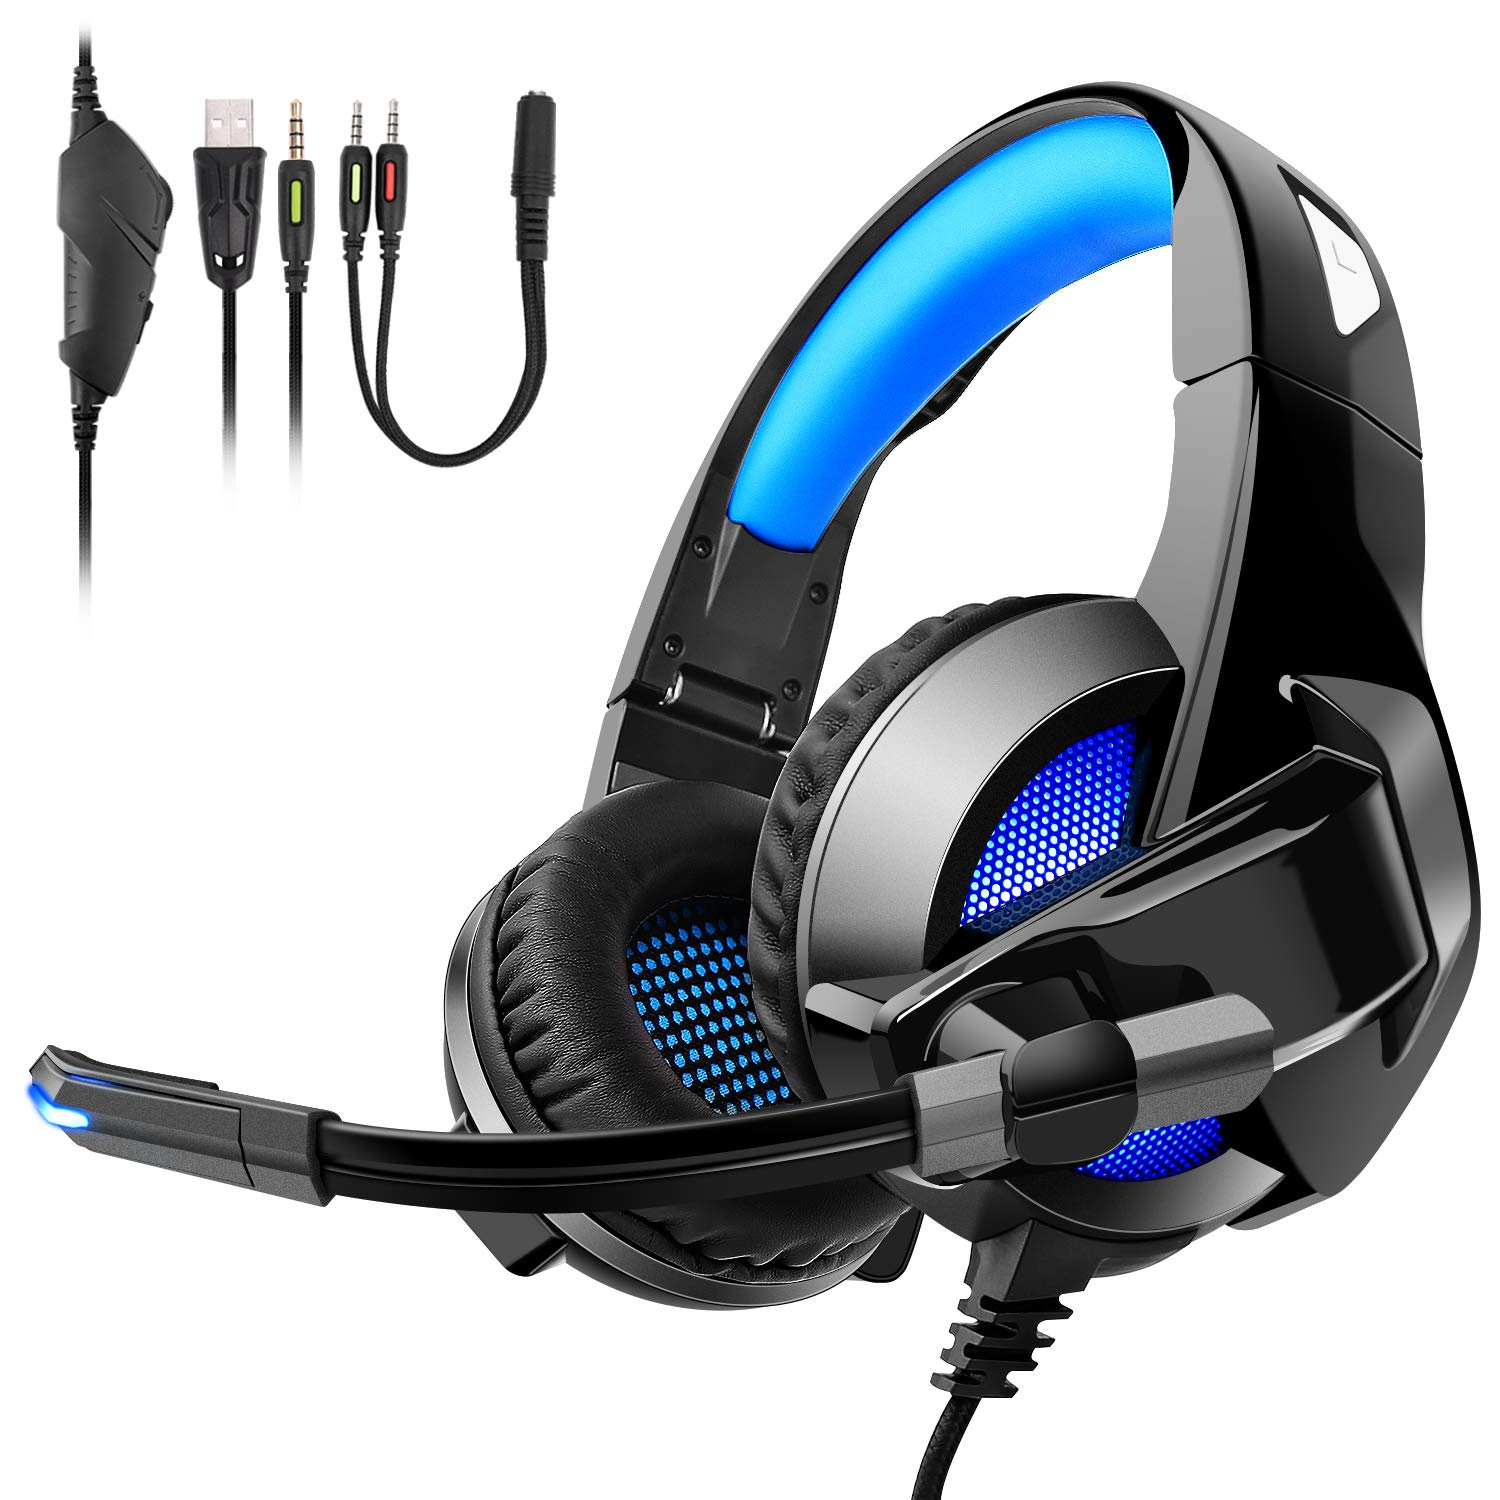 Gaming Headset for PS4, TENSWALL Comfortable Over-Ear Foldable Gaming Headphones with Mic LED Light Noise Cancelling & Volume Control for Xbox One, Nintendo Switch, PC, Laptop, Mac, Tablet